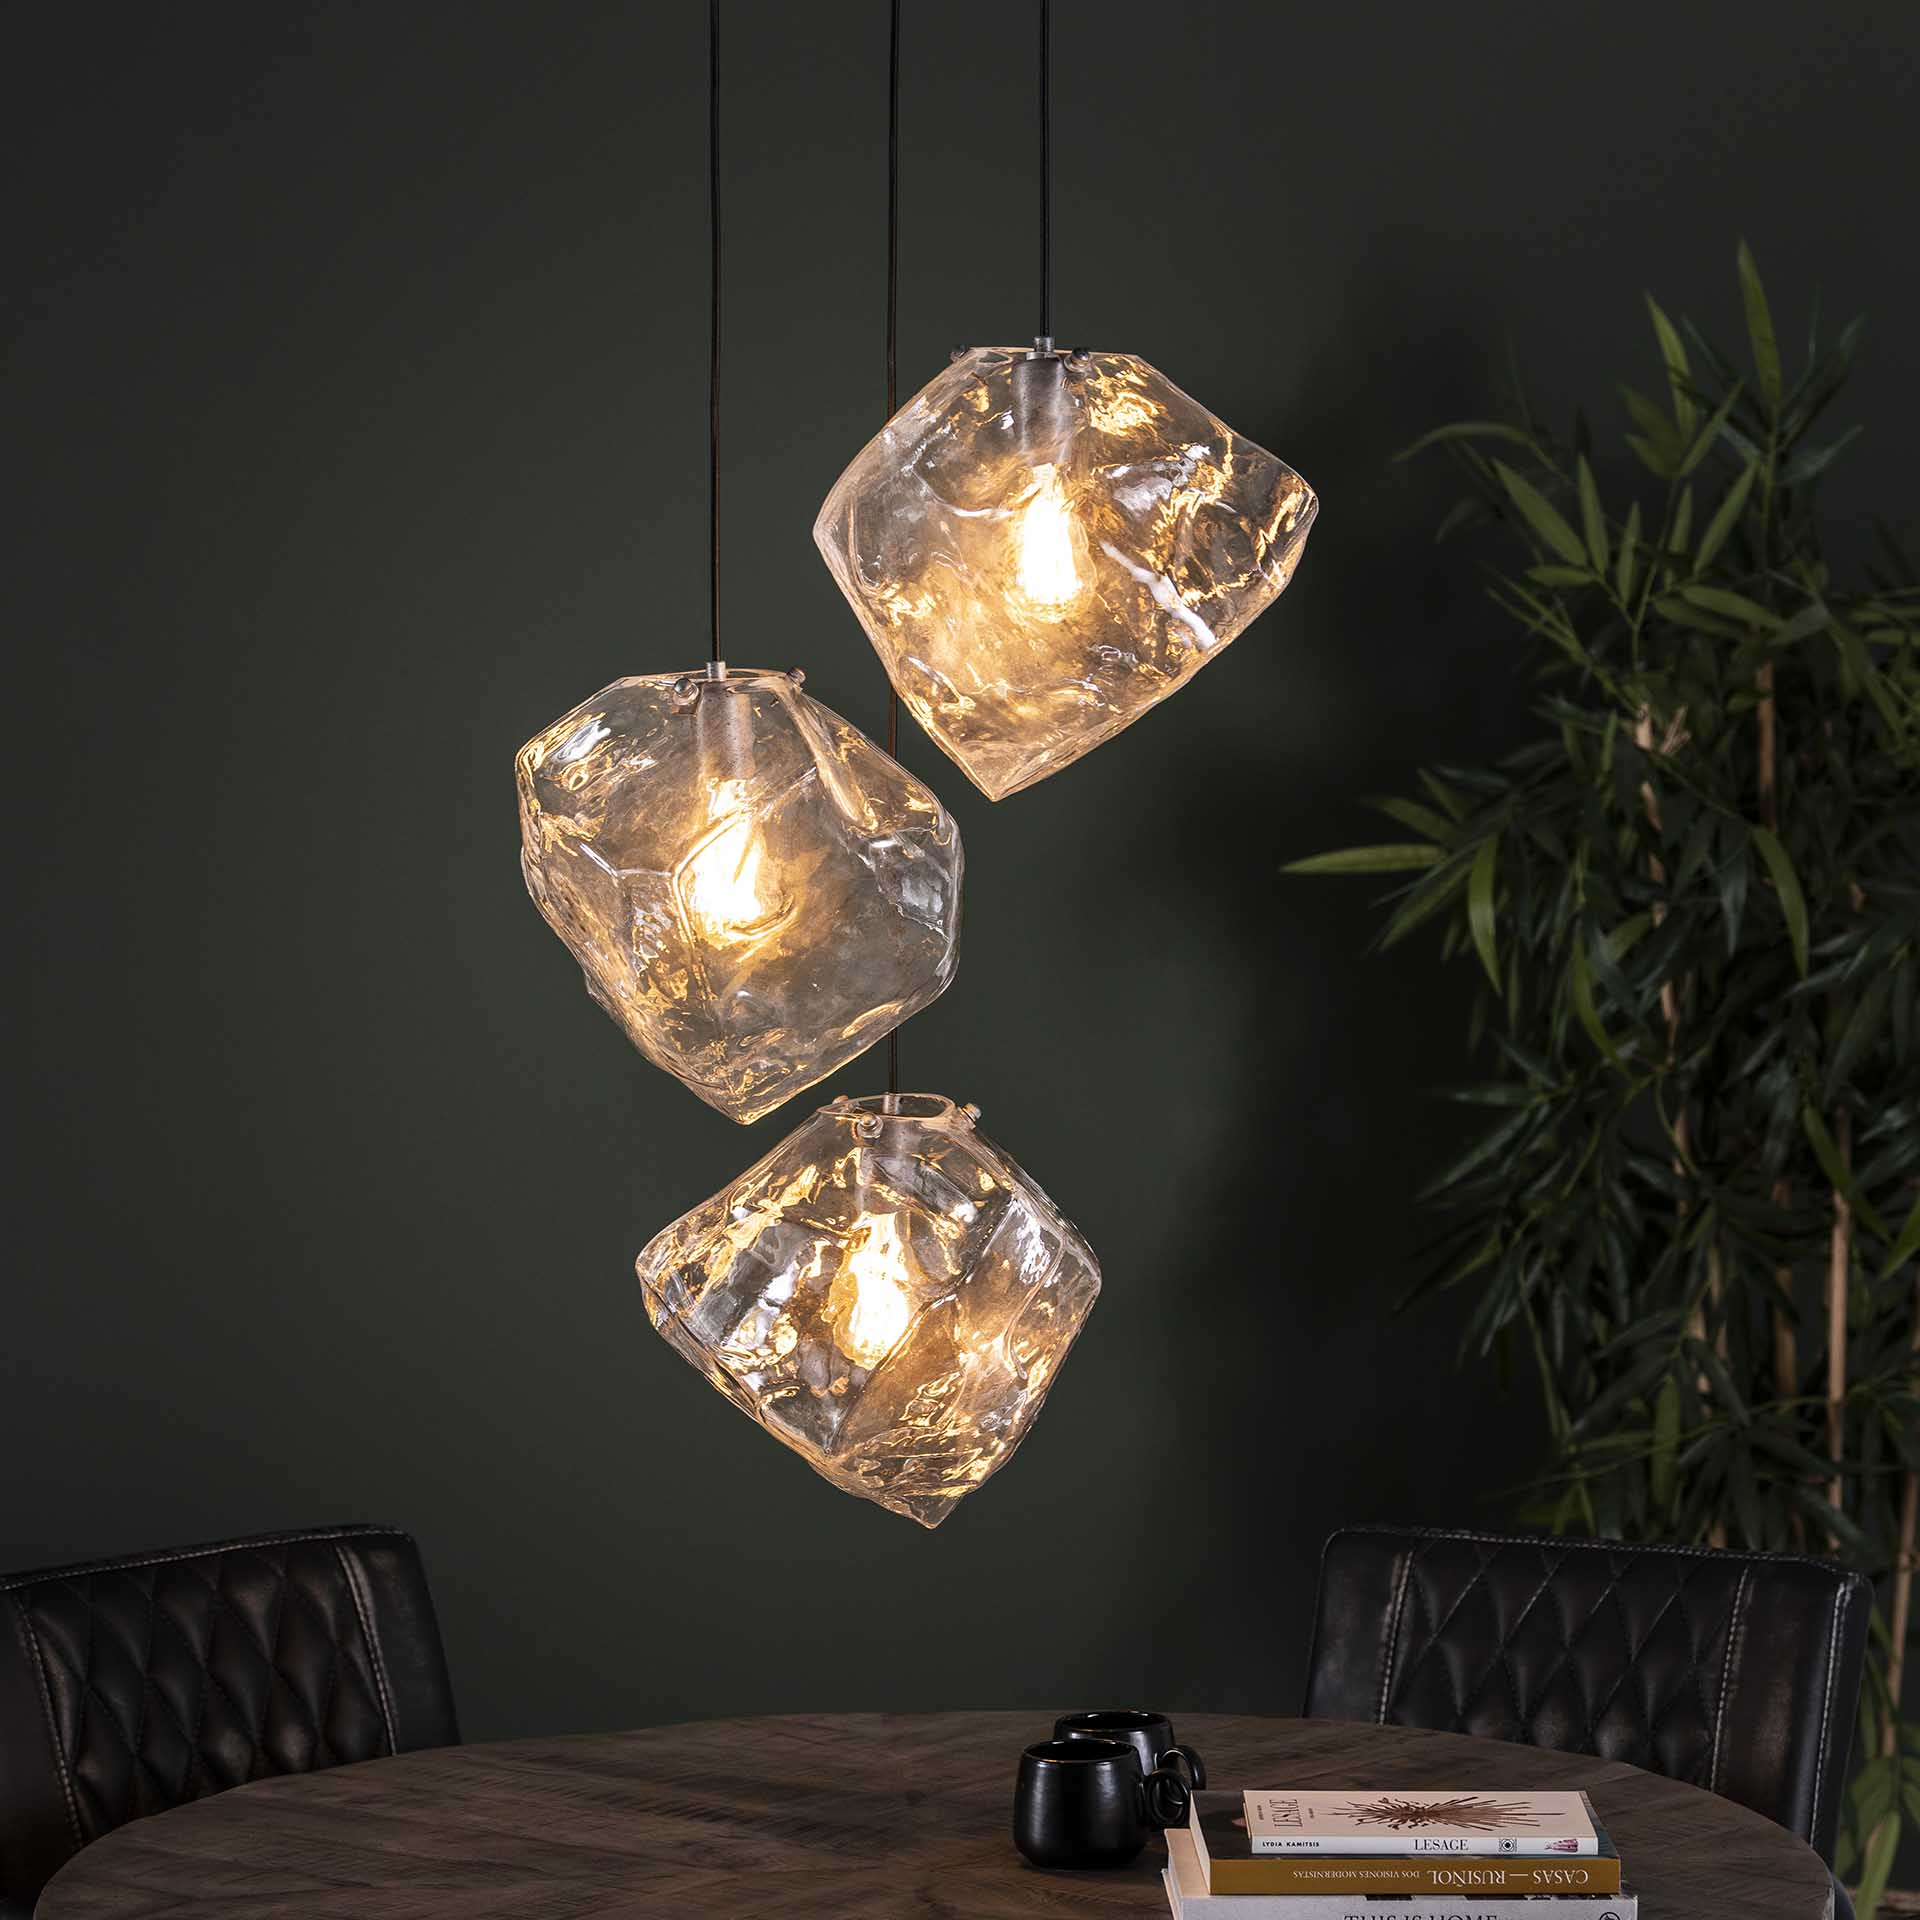 Hanglamp 3L rock clear getrapt Transparant glas